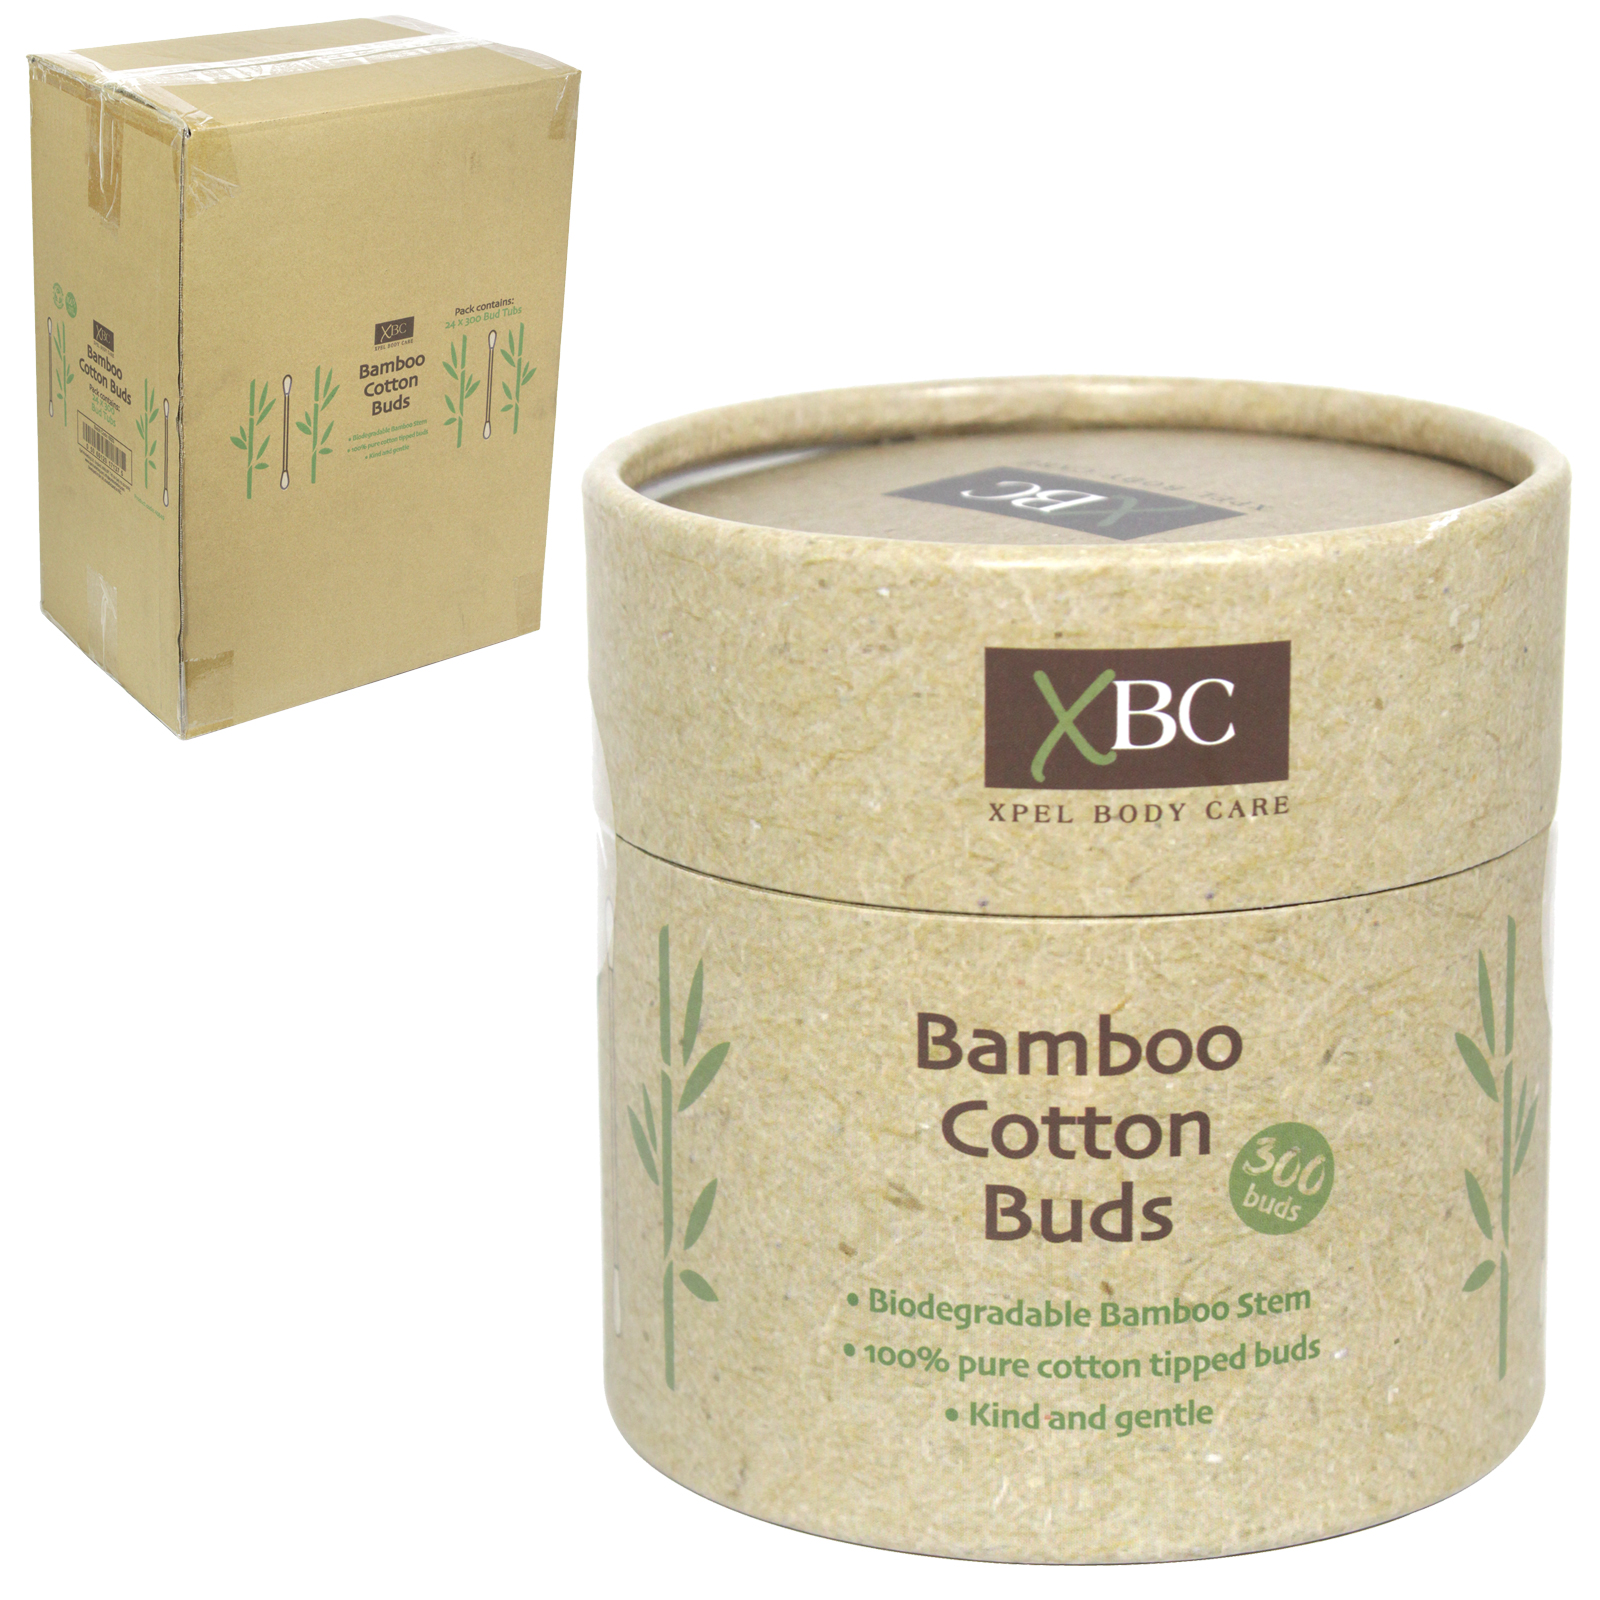 XBC ECO FRIENDLY BAMBOO COTTON BUDS 300'S X24